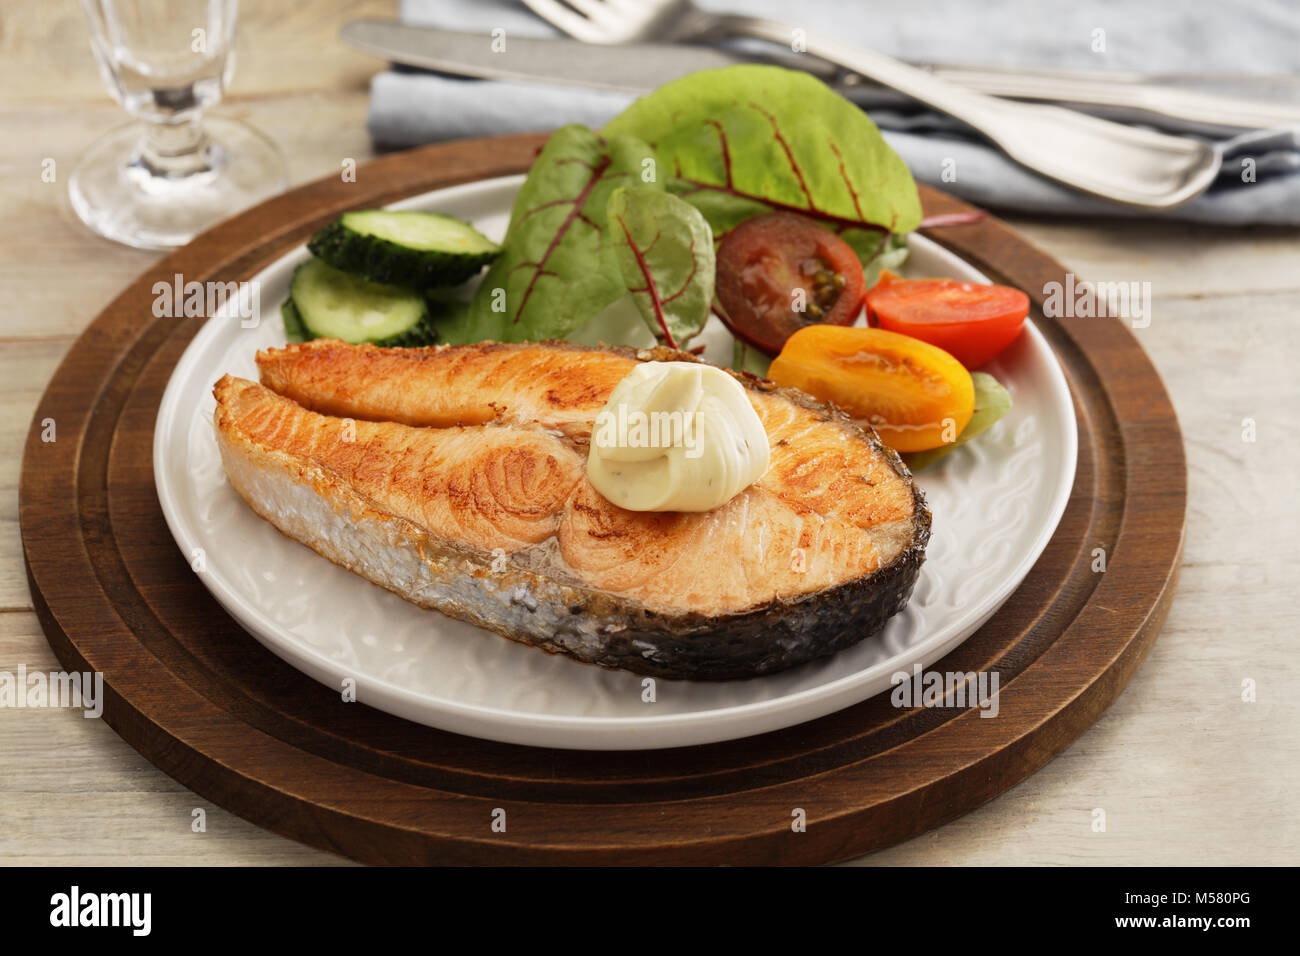 Roasted salmon steak with vegetables - Stock Image